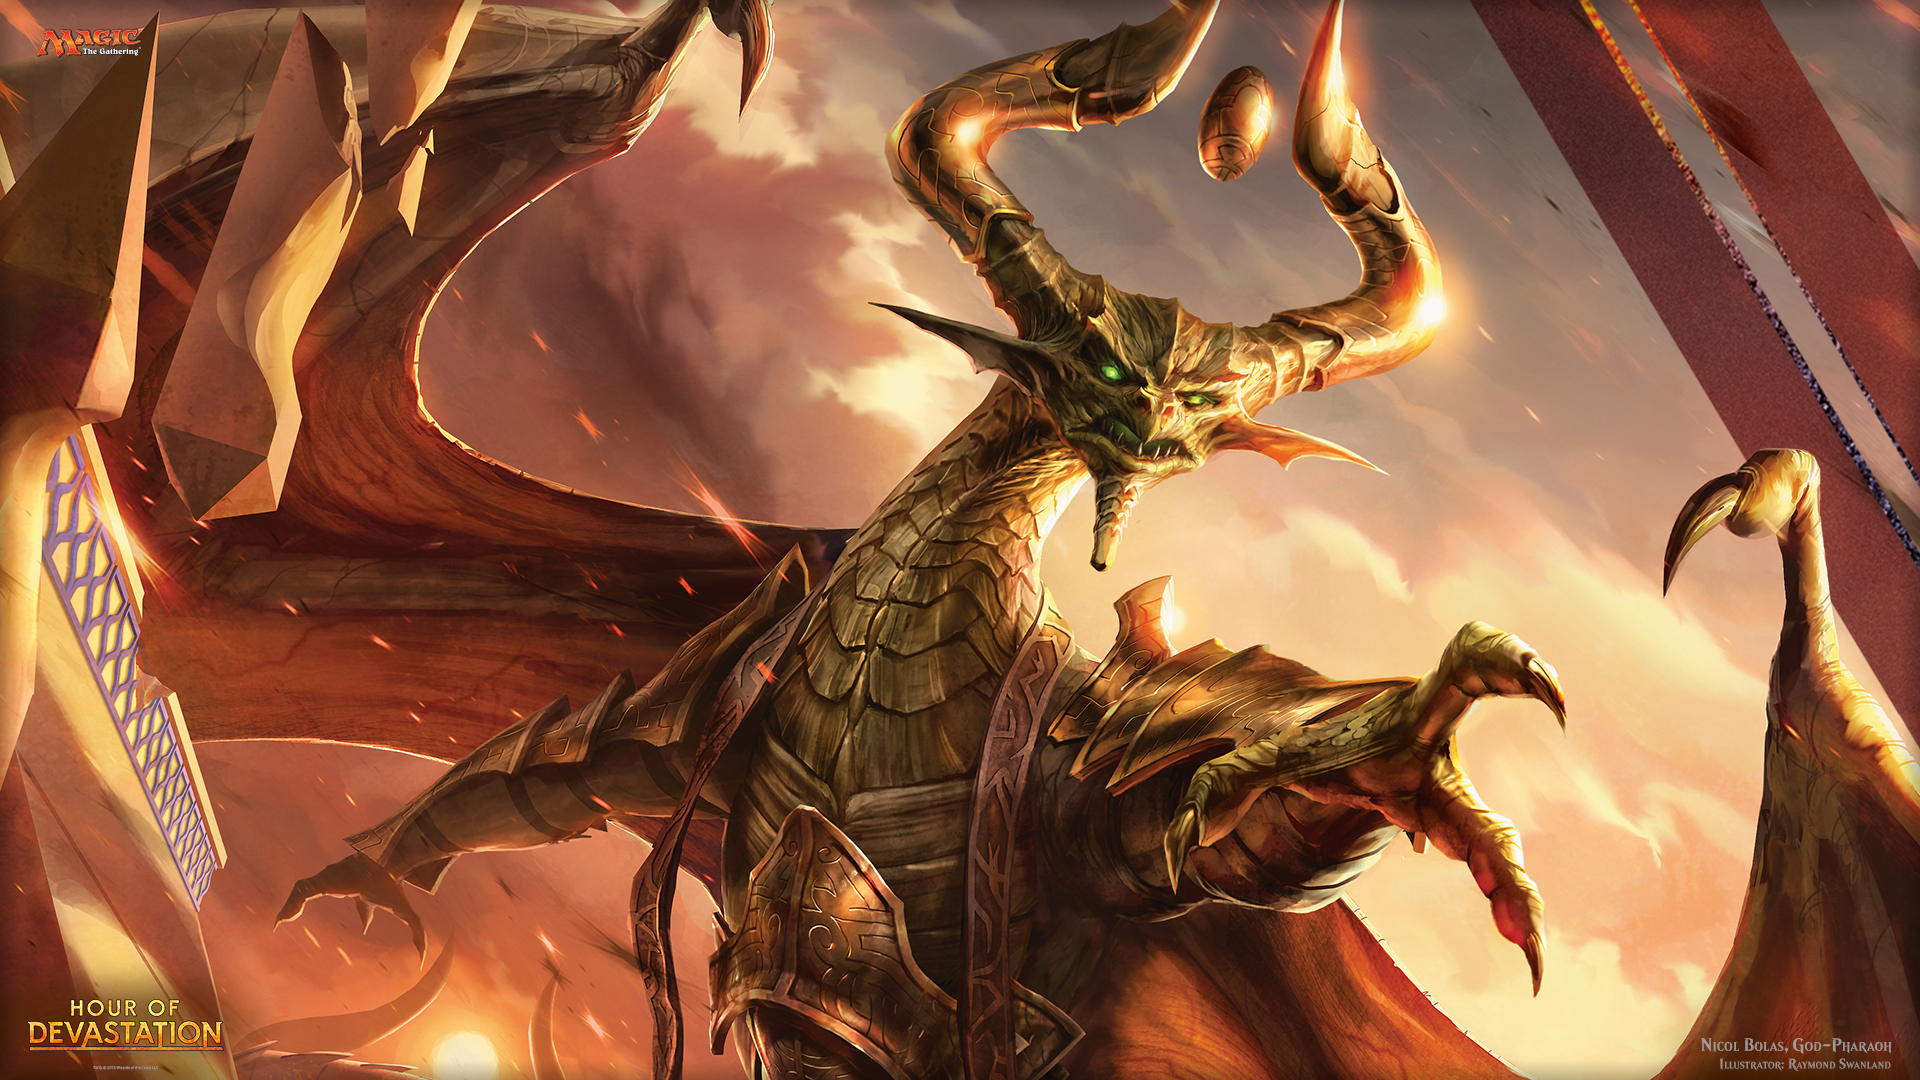 Image result for nicol bolas god-pharaoh